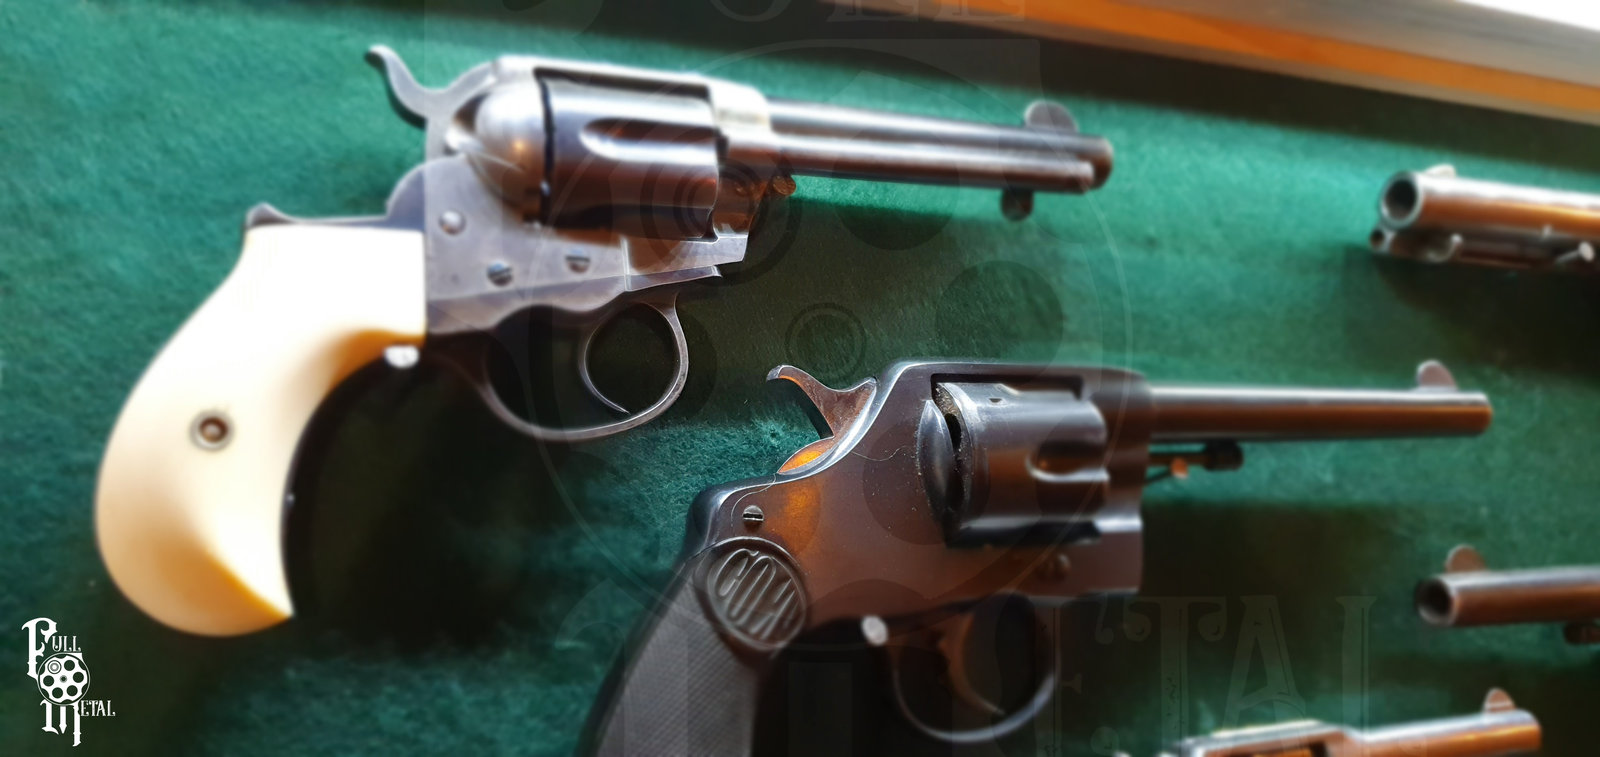 Ma collection d'armes anciennes 201225071425821800